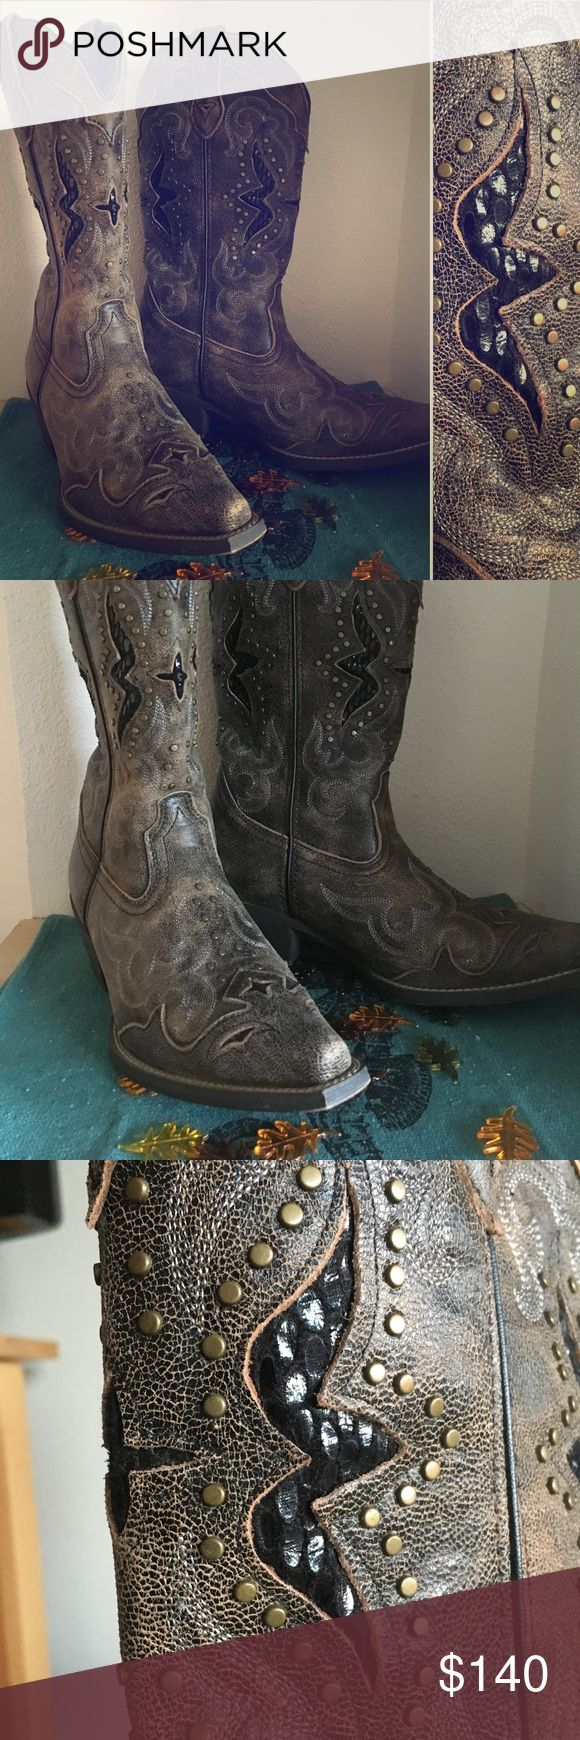 """Laredo boots Mocha-colored Loredo high-calf cowboy boots with brass adornments and black peek-a-boo shiney """"scales"""". About a 1 1/2"""" heel. EEUC. Worn 1x in a grass field. Super comfortable. loredo Shoes Heeled Boots"""